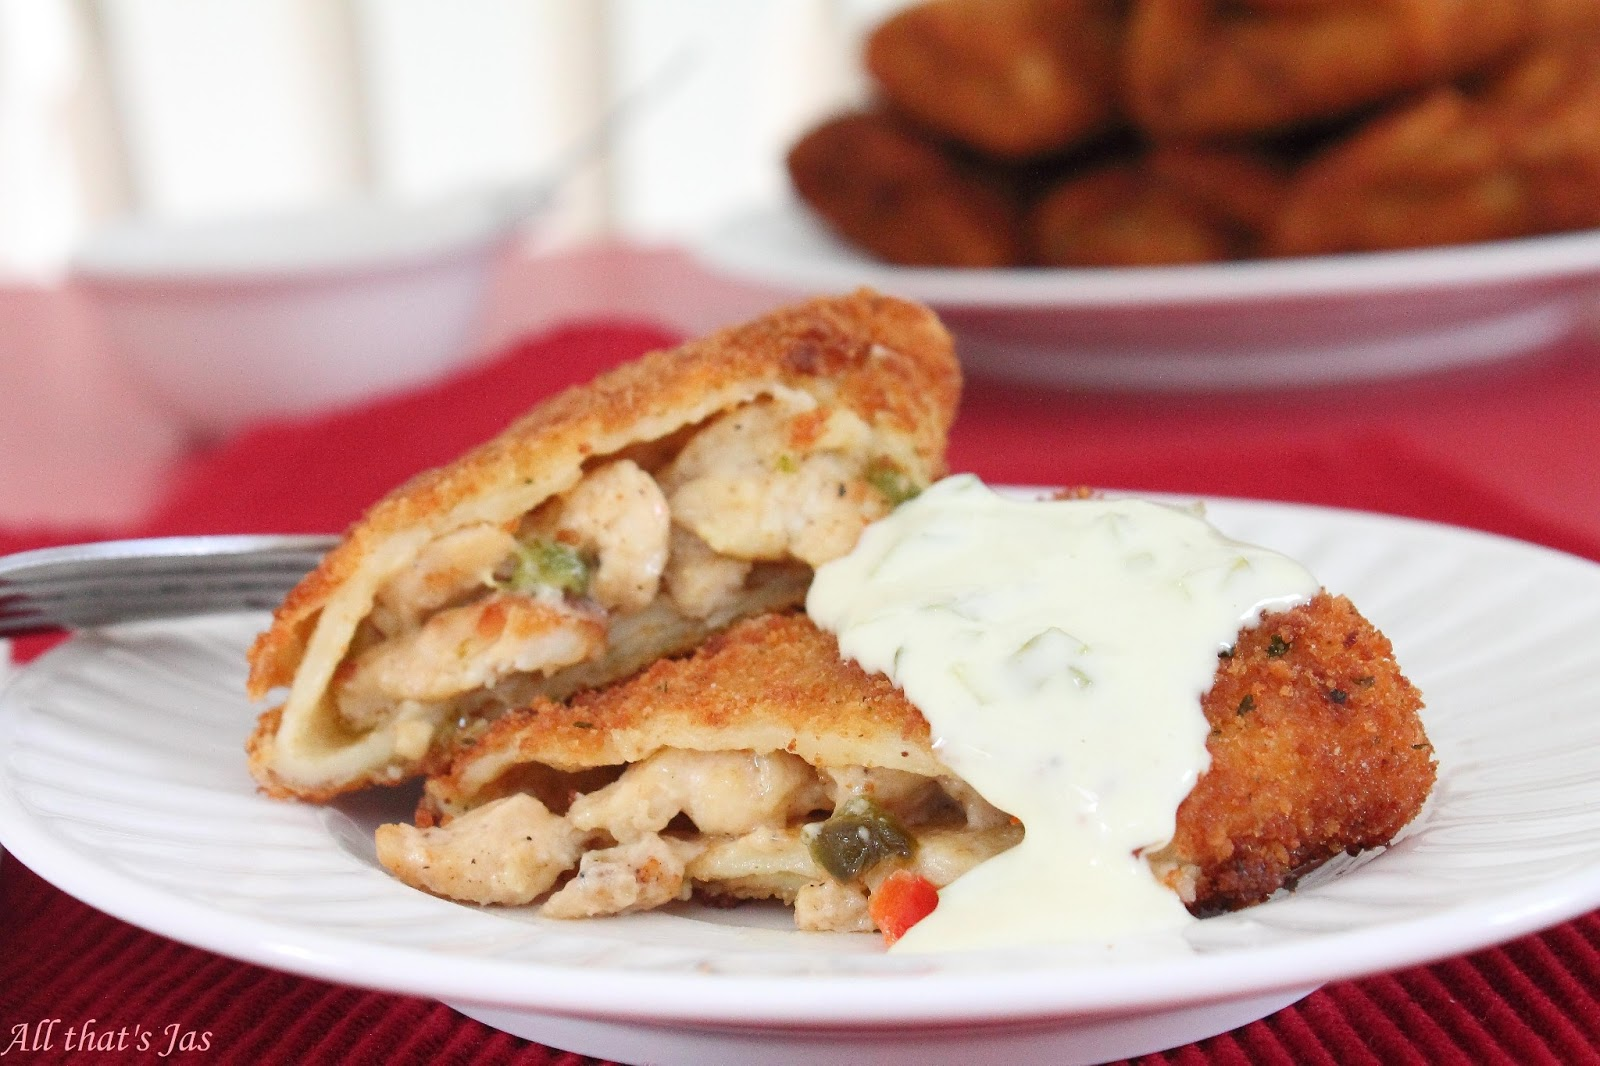 Chicken-Filled Crepes with Tartar Sauce